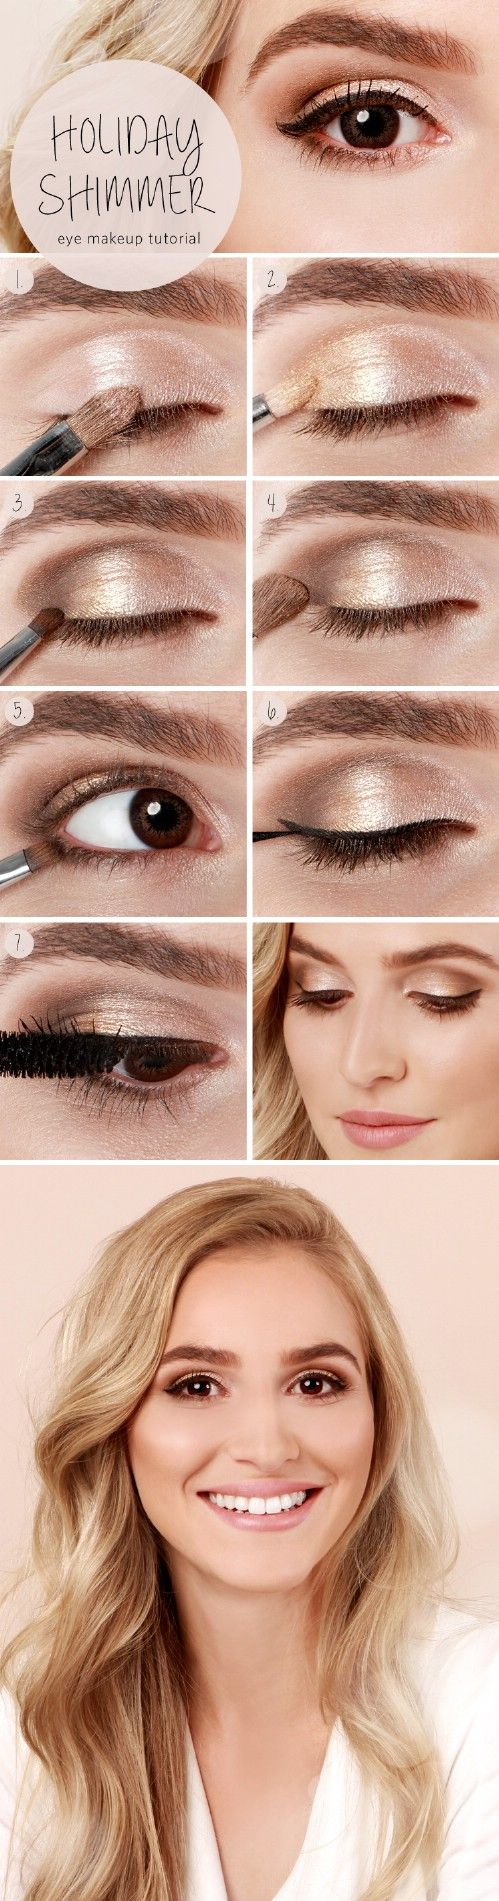 See More Makeup Ideas on http://pinmakeuptips.com/how-to-apply-full-coverage-foundation/